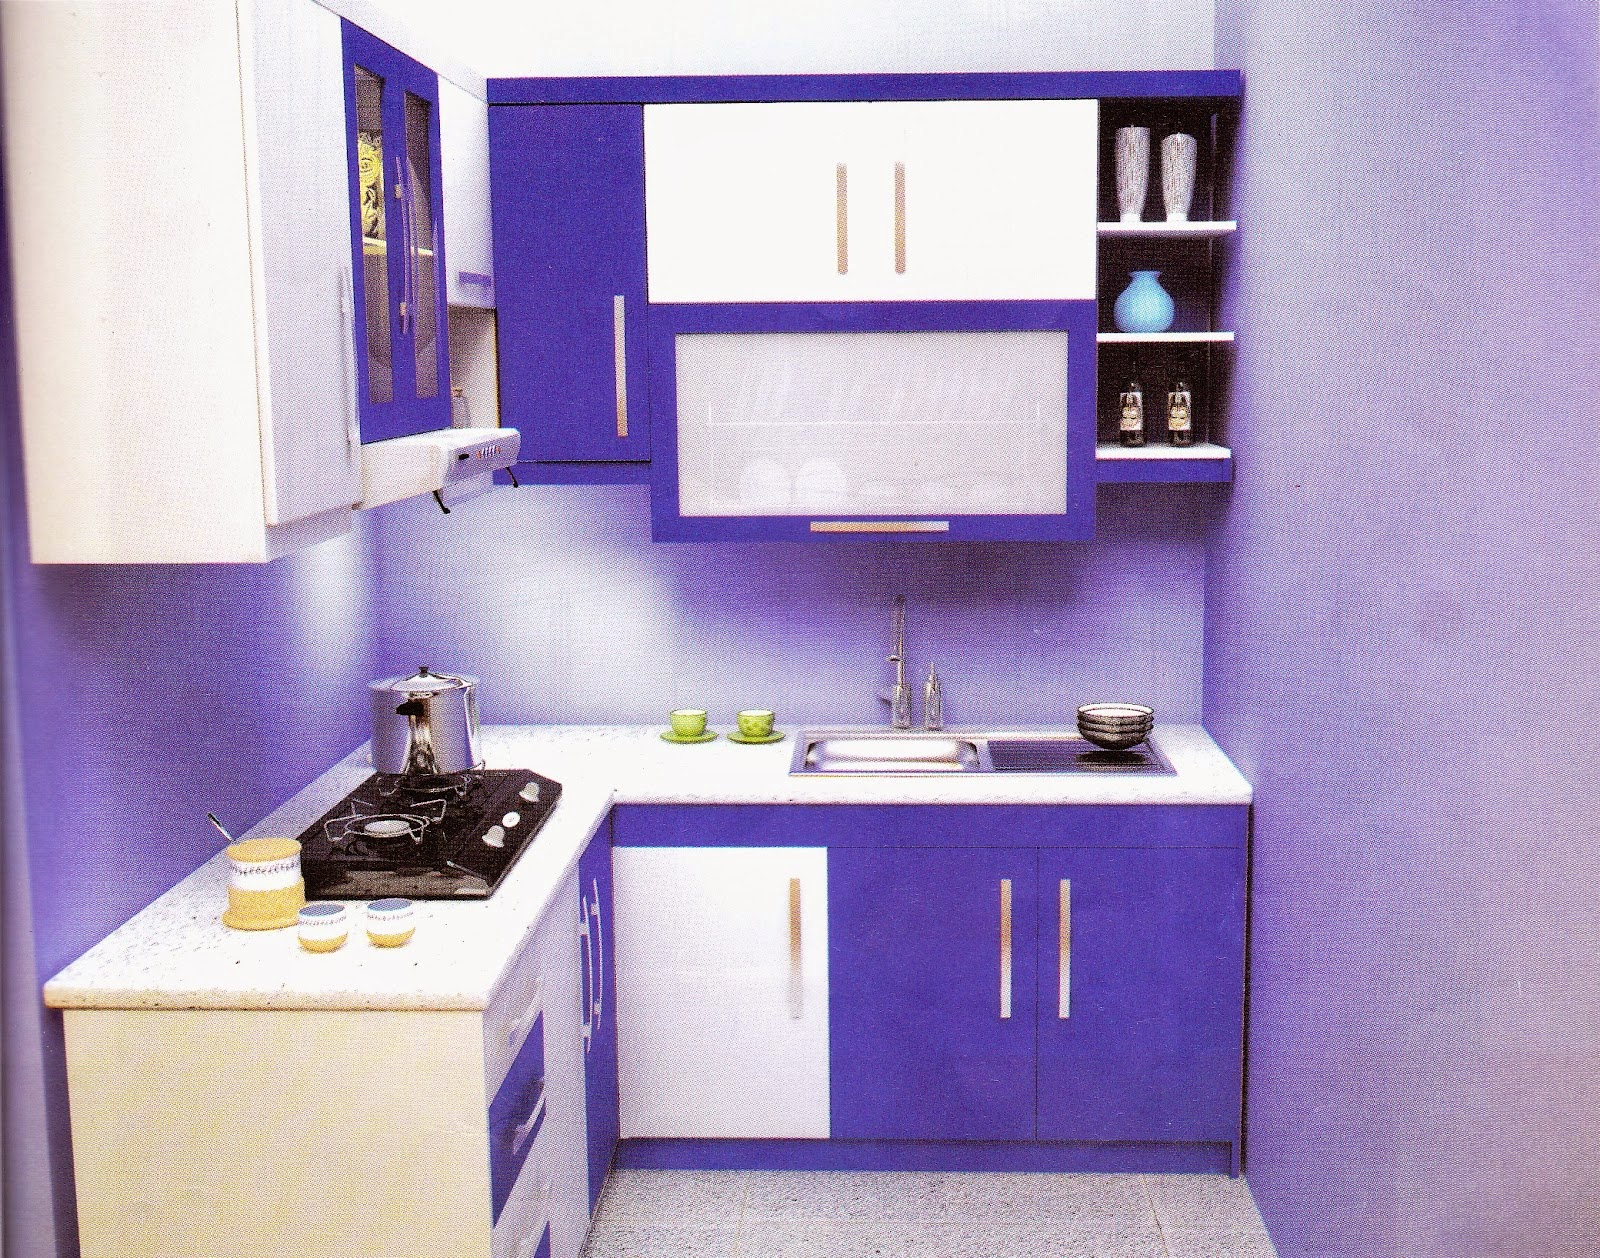 Sep 4 2013 harga kitchen set murah bandung kitchen set murah bandung kitchen set minimalis luxury villa guesthouse in bandung roomorama